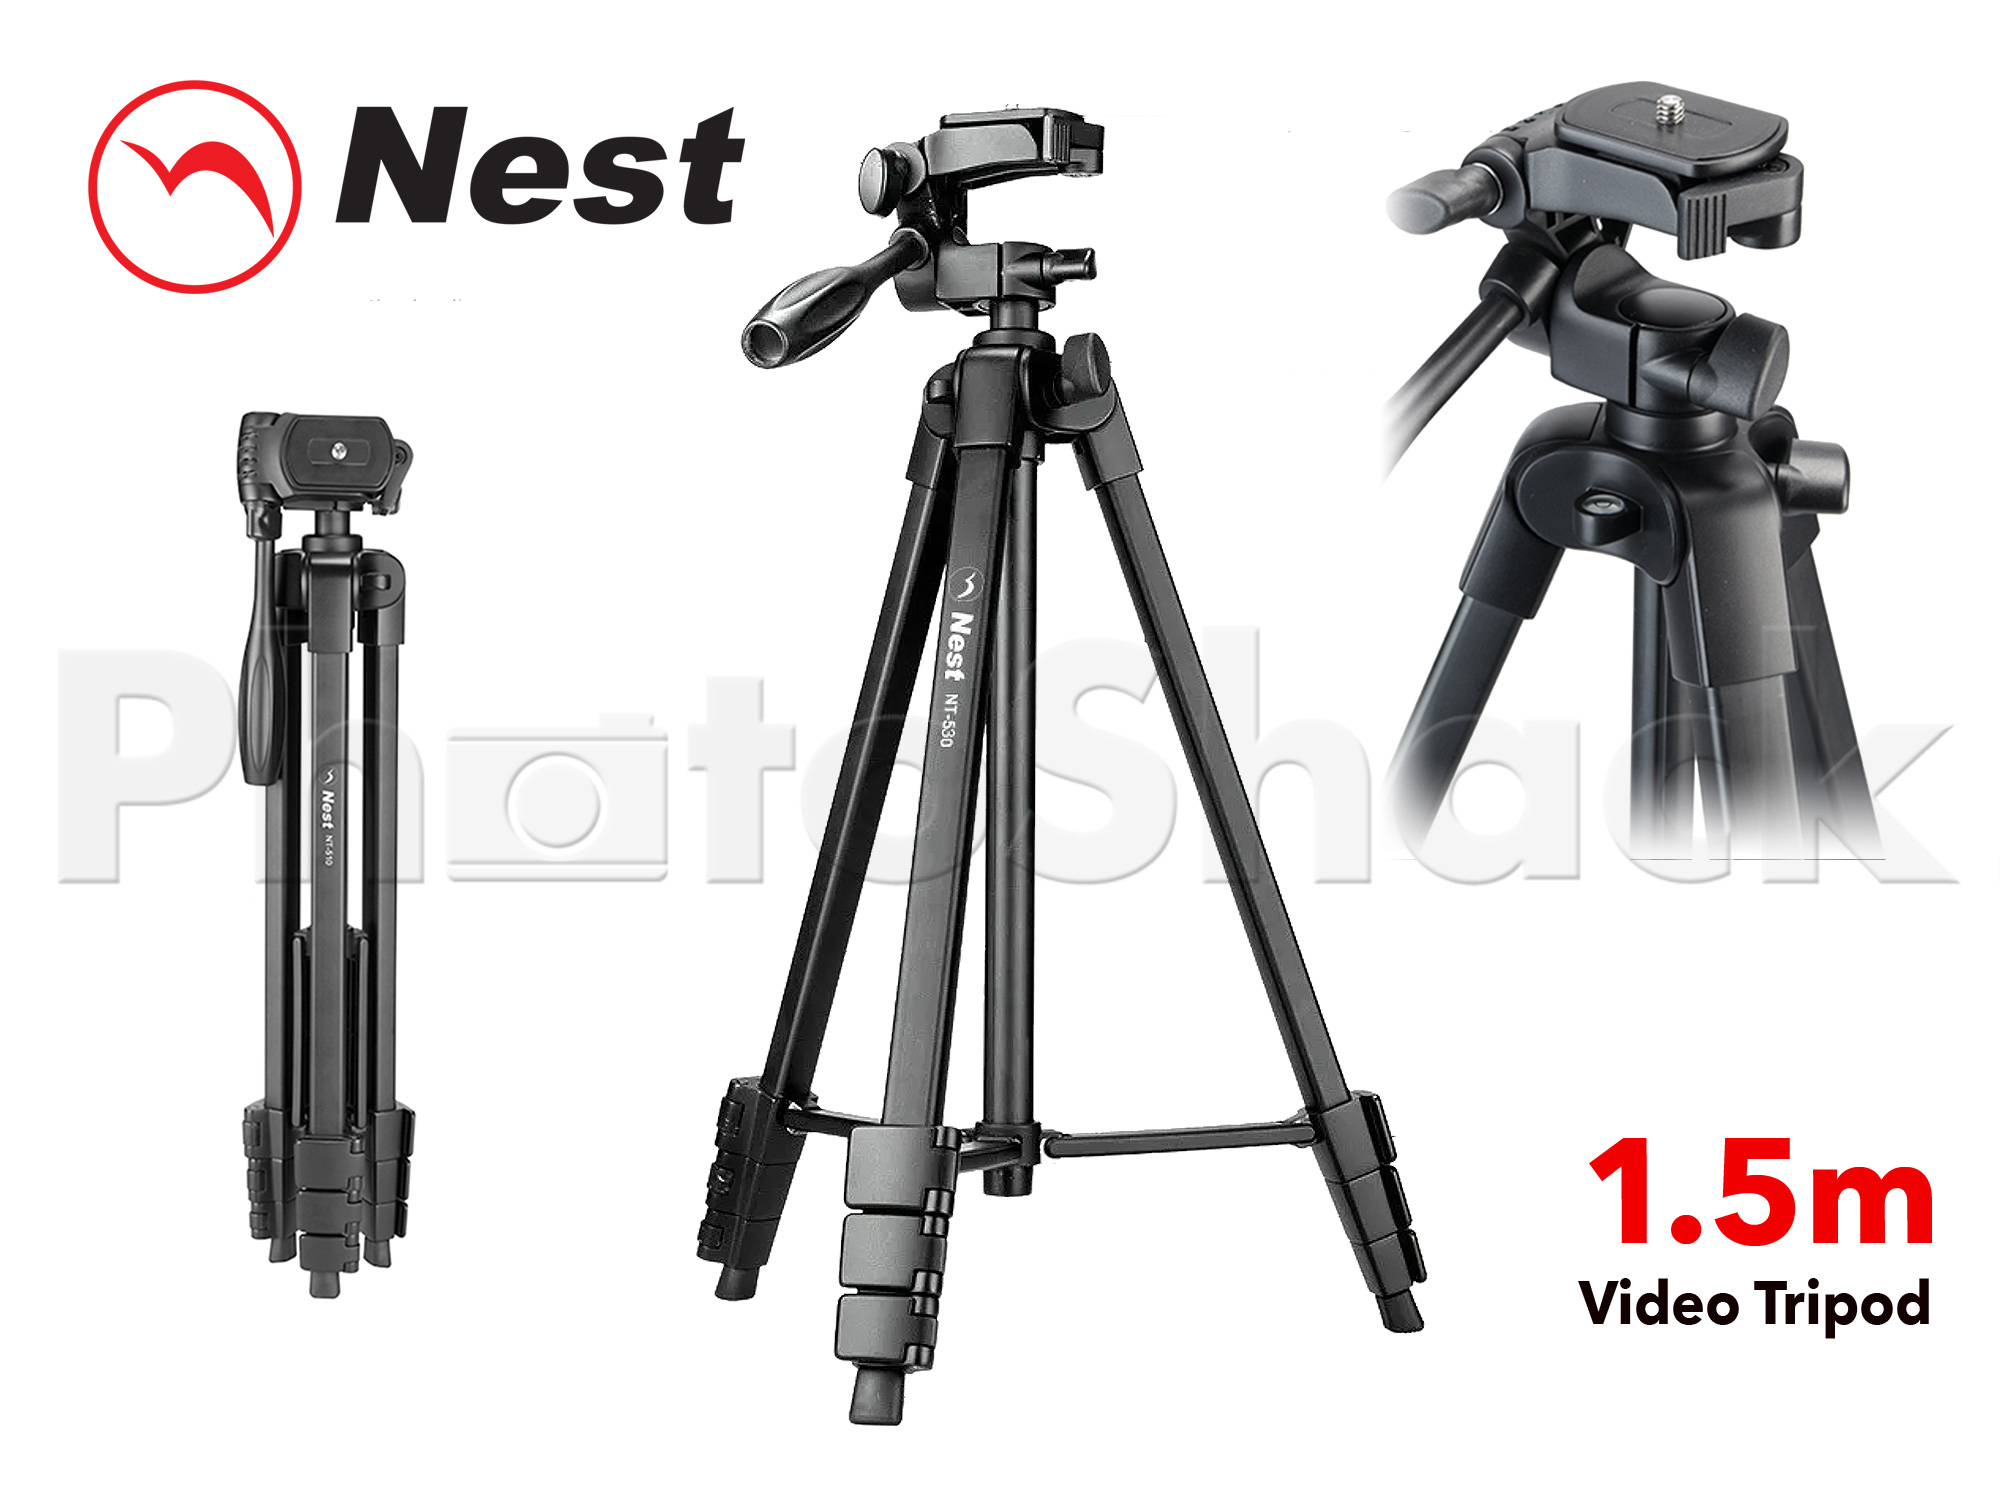 TRIPOD PHOTO/VIDEO NT530 - 1.5m